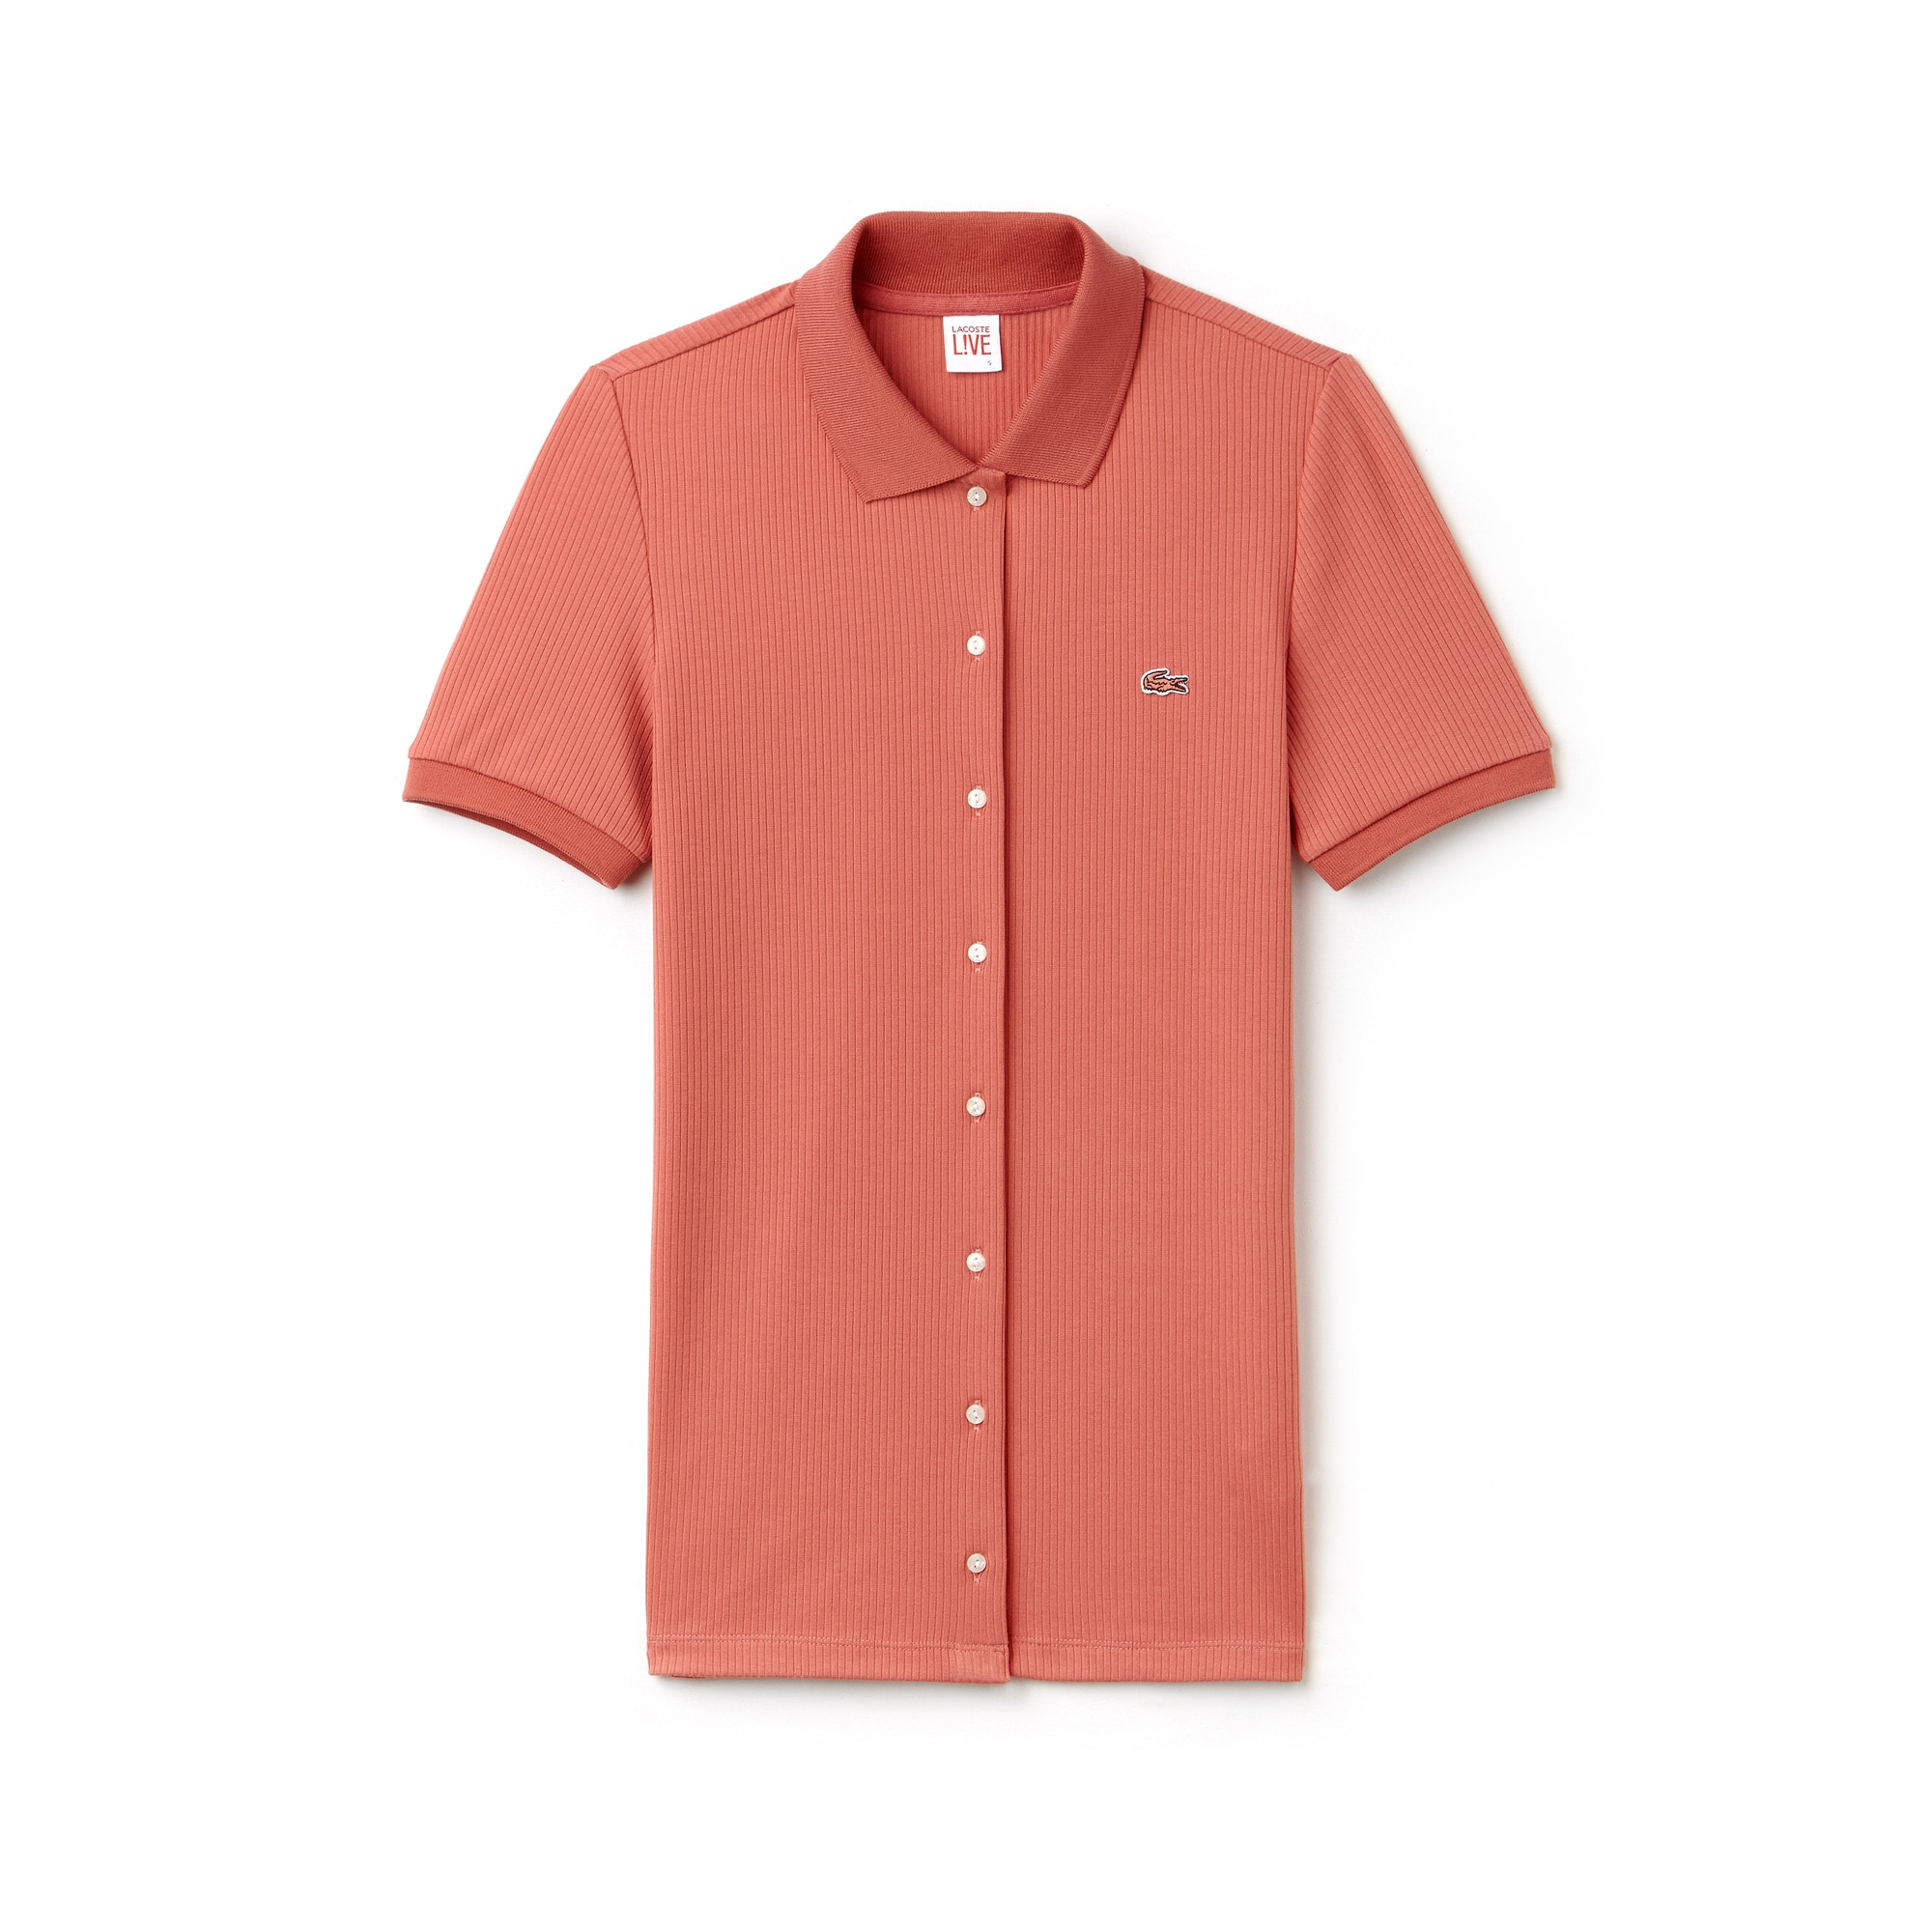 Women's Lacoste LIVE Slim Fit Stretch Ribbed Knit Buttoned Polo